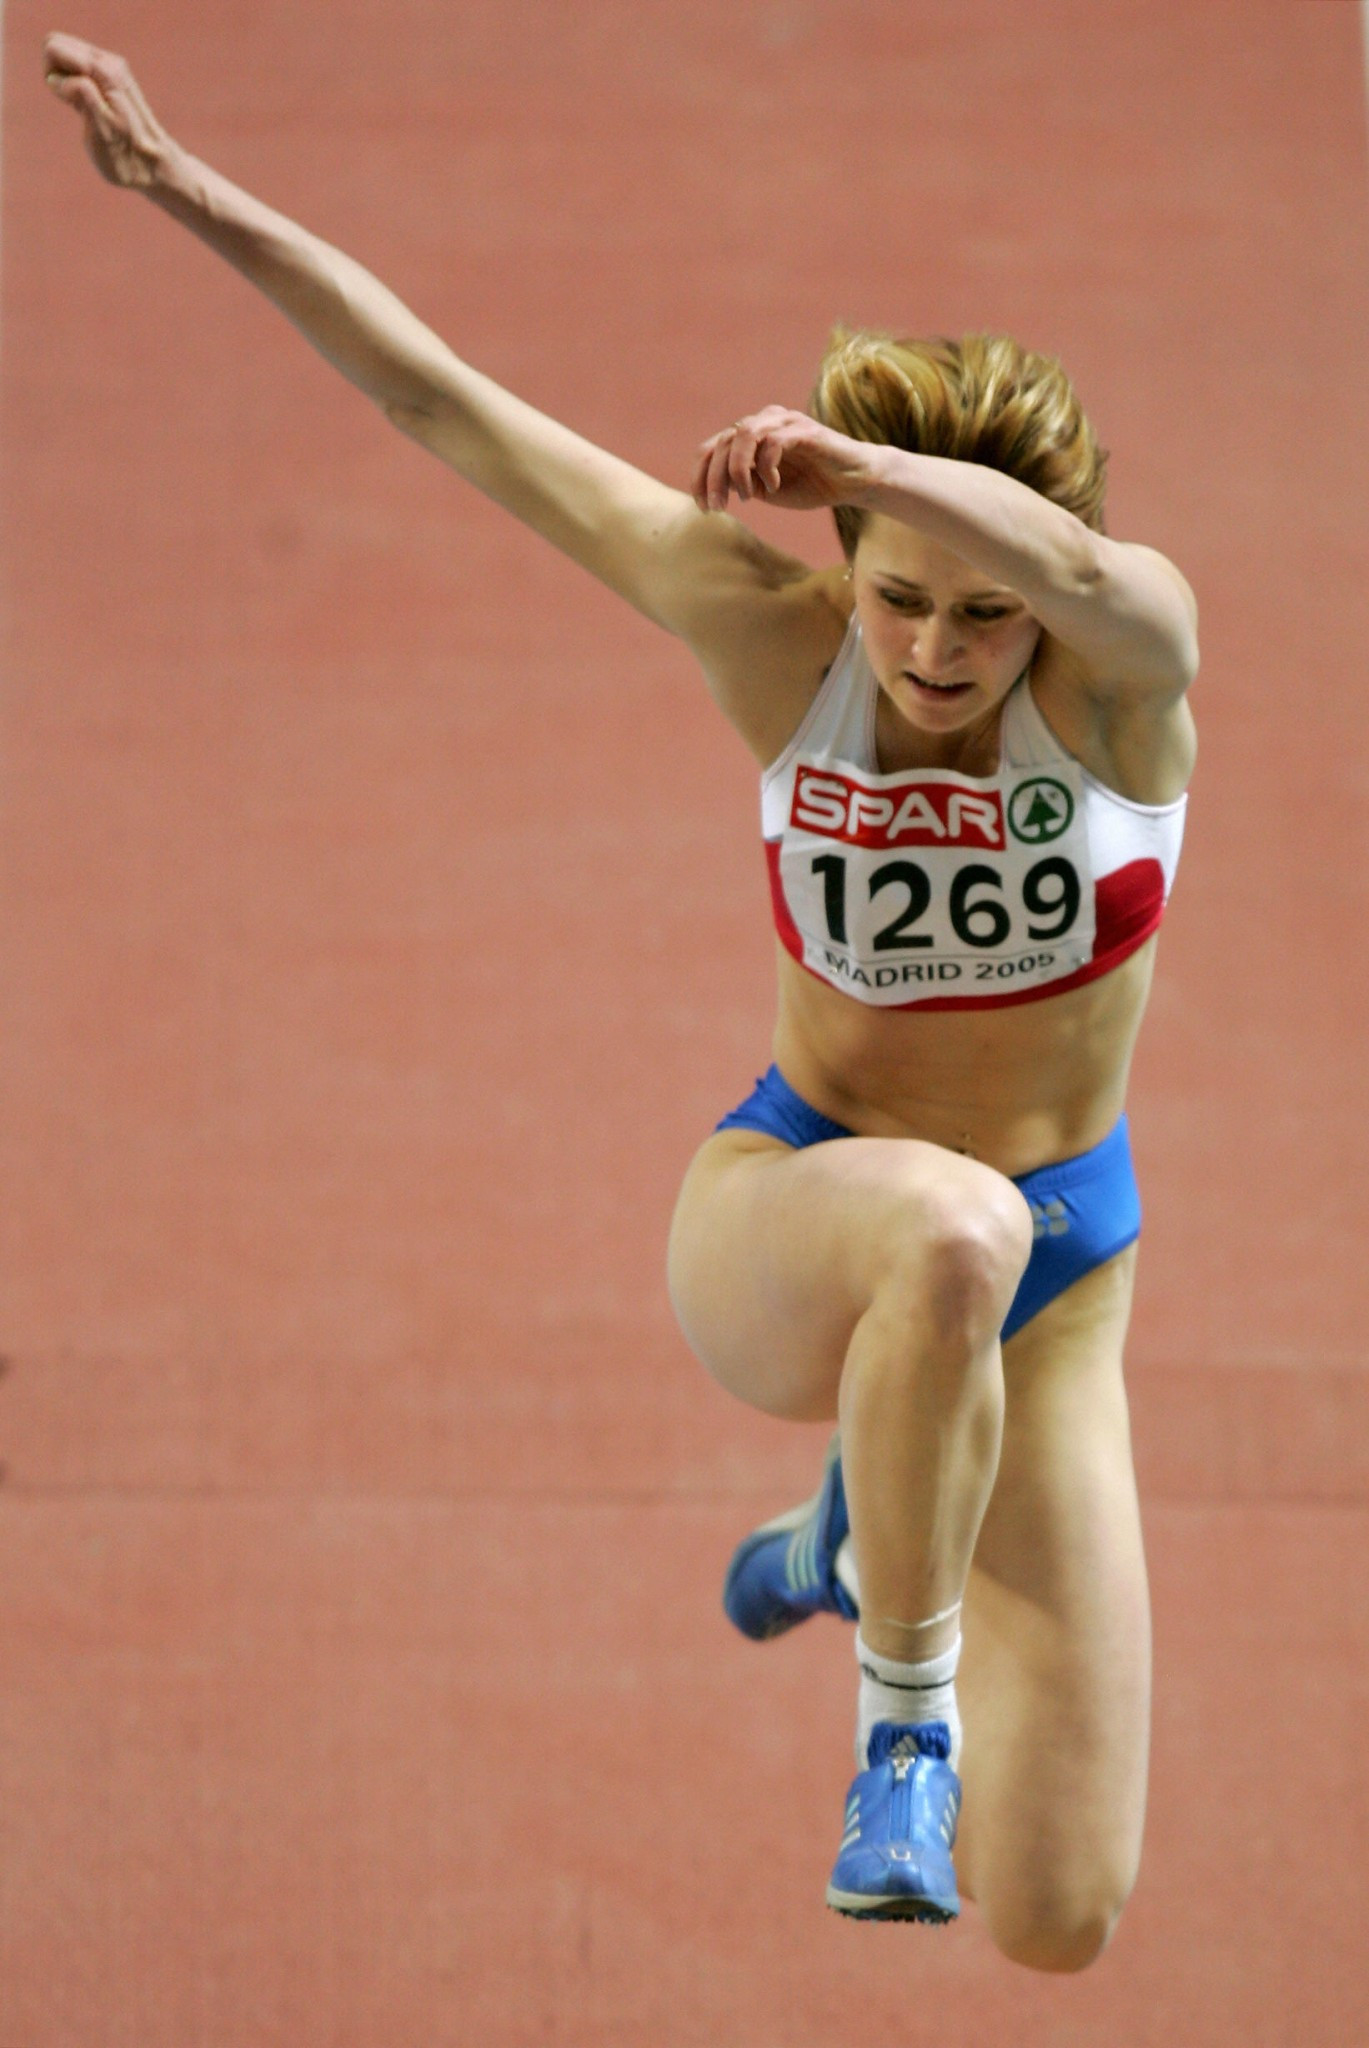 Viktoriya Gurova-Valyukevich's best performance was winning the triple jump at the 2005 European Indoor Championships in Madrid but she has now been banned for two years for a positive test for steroids ©Getty Images